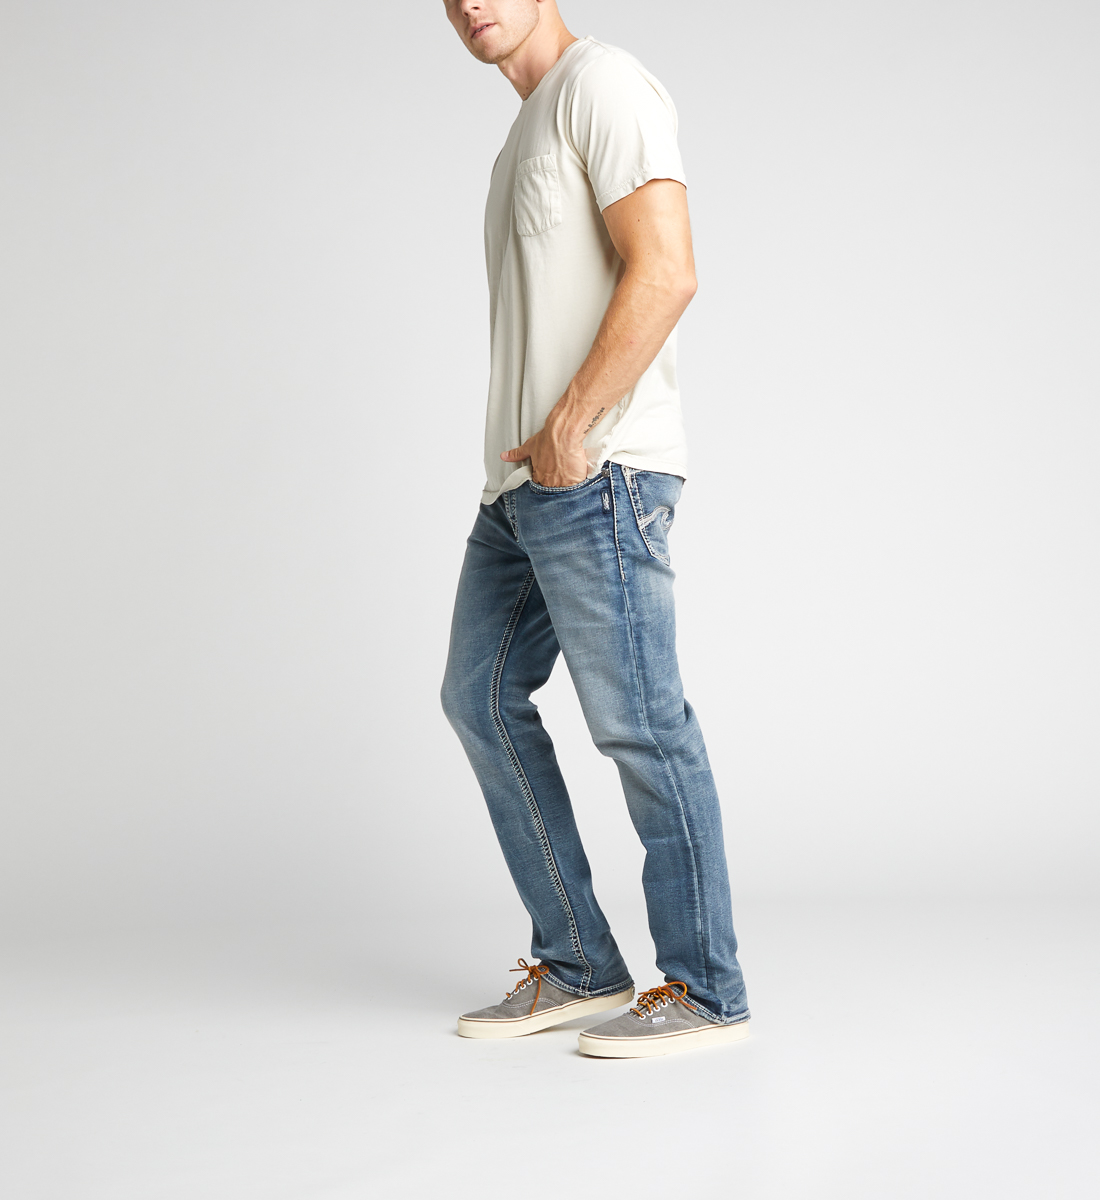 Grayson Easy Fit Straight Leg Jeans - Big & Tall Side